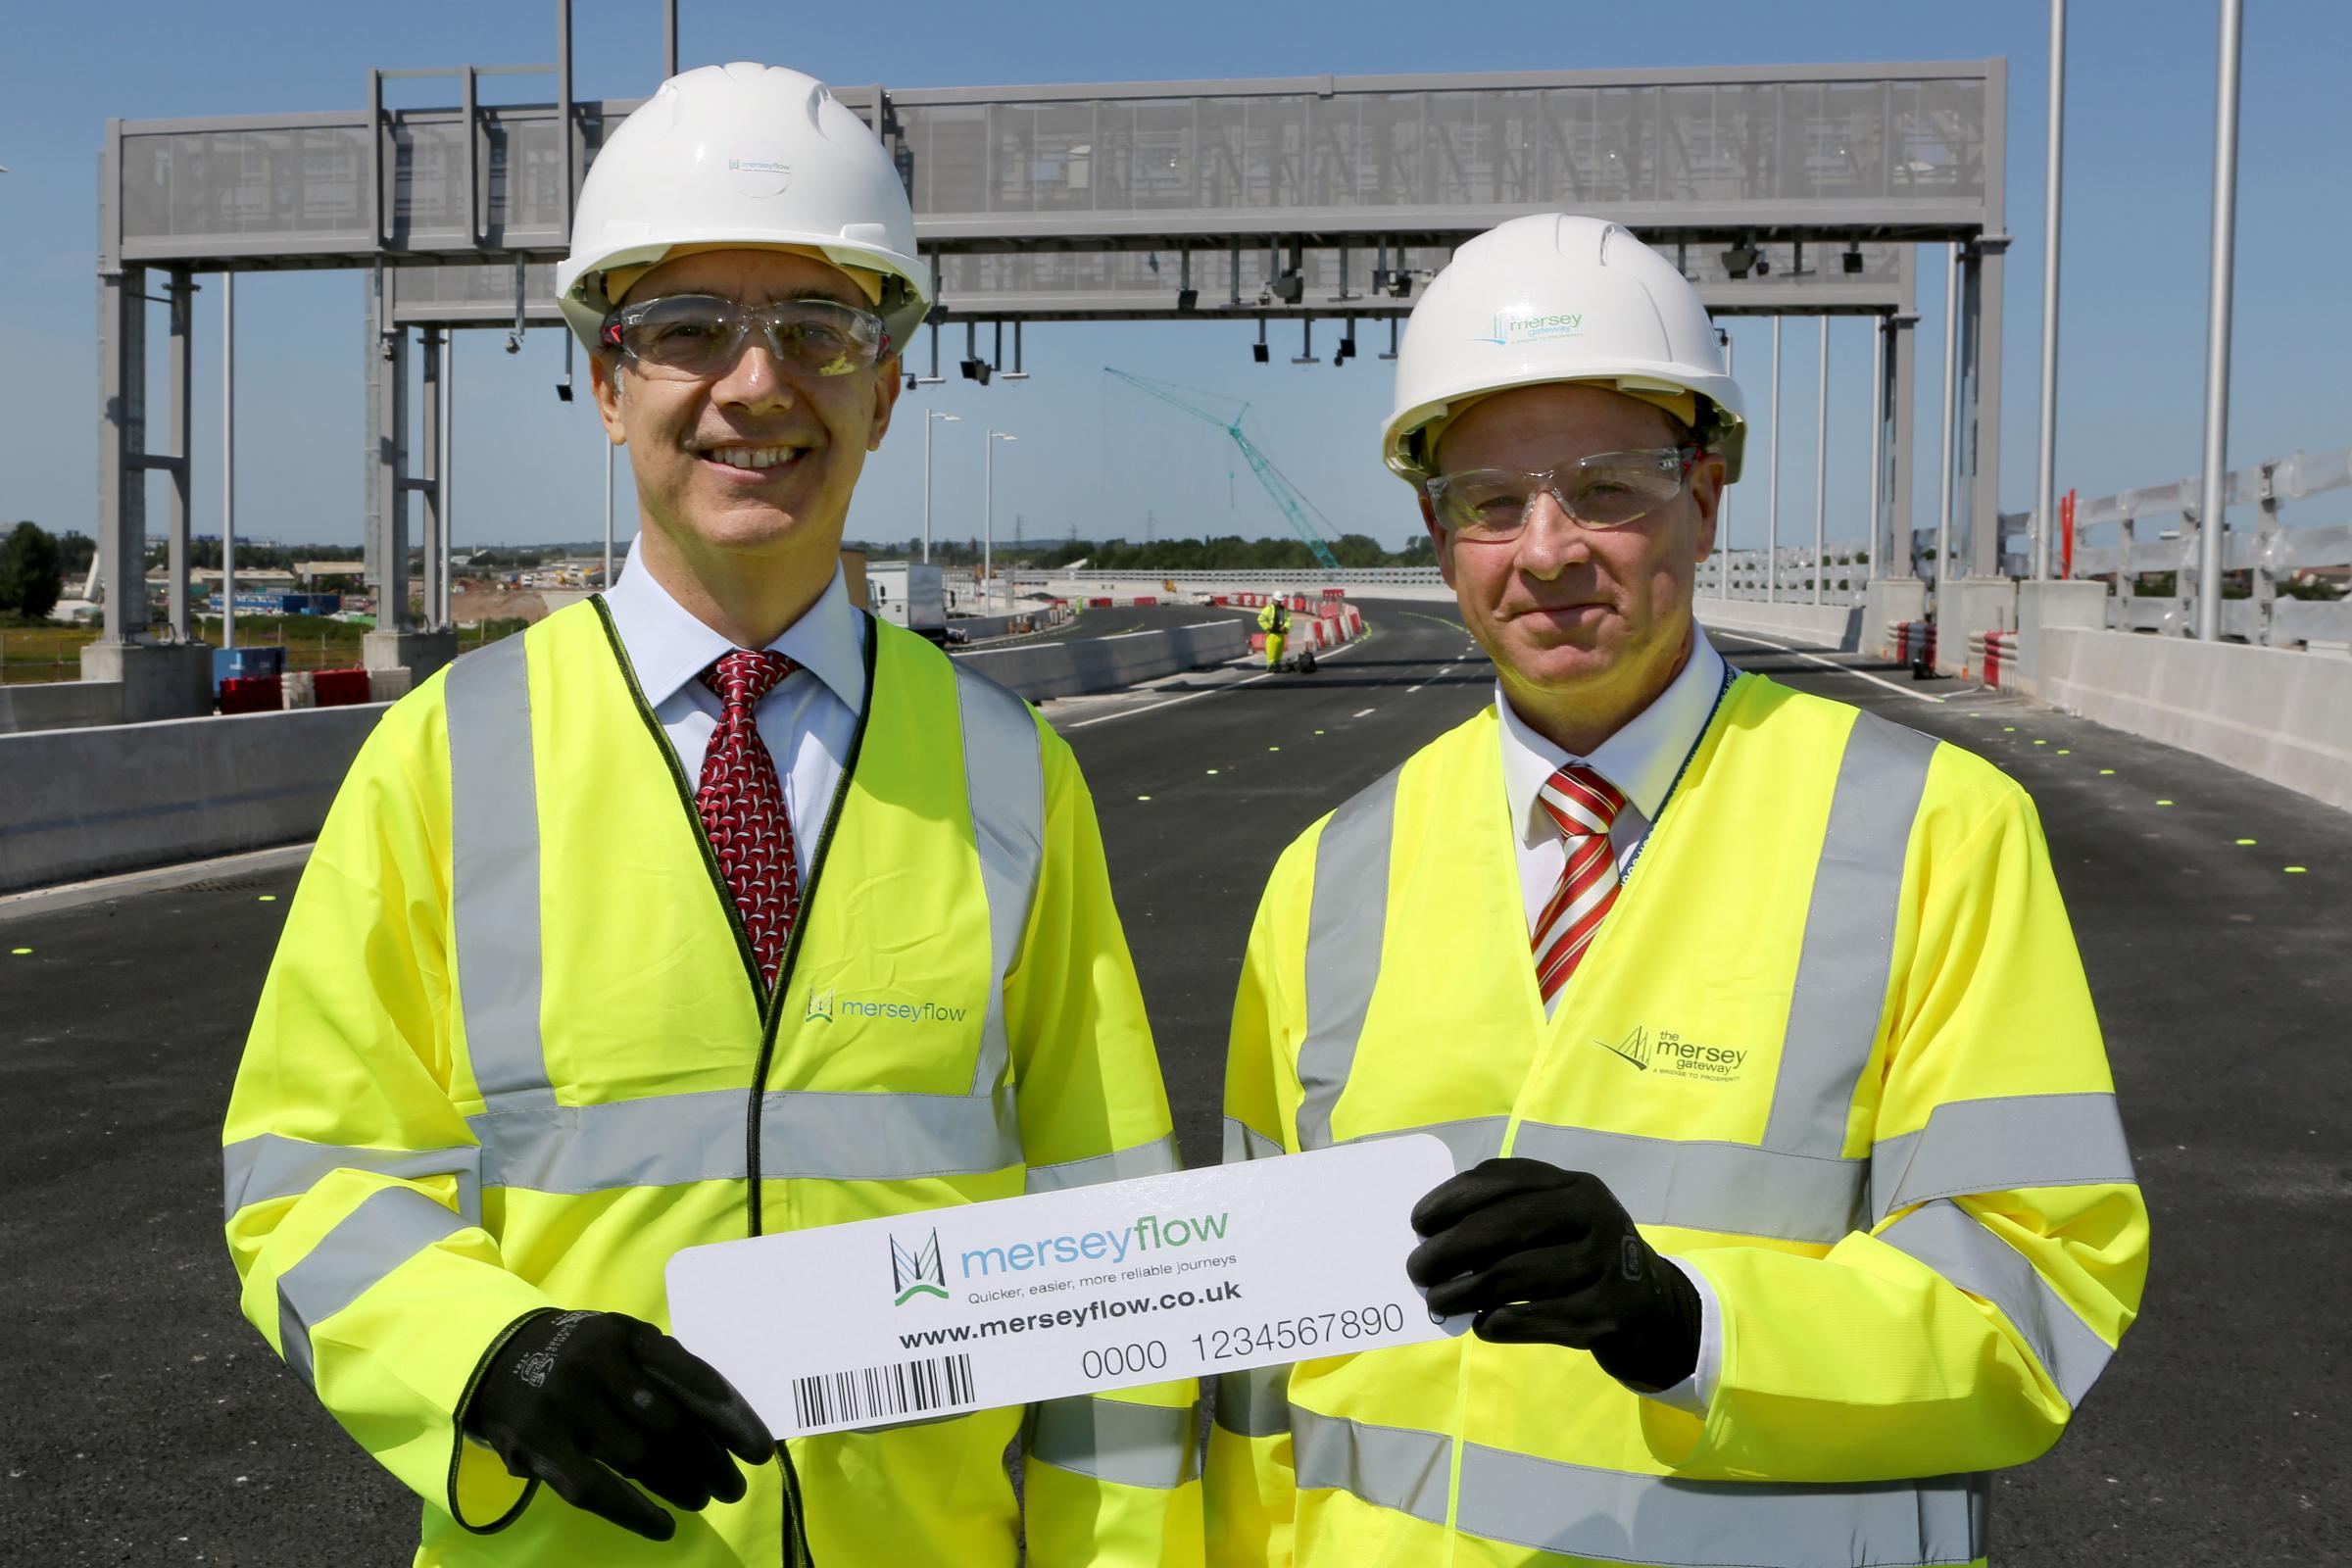 Anthony Alicastro, managing director of merseyflow, and David Parr, chief executive of Halton Council, at the opening of tolling registration on the Mersey Gateway